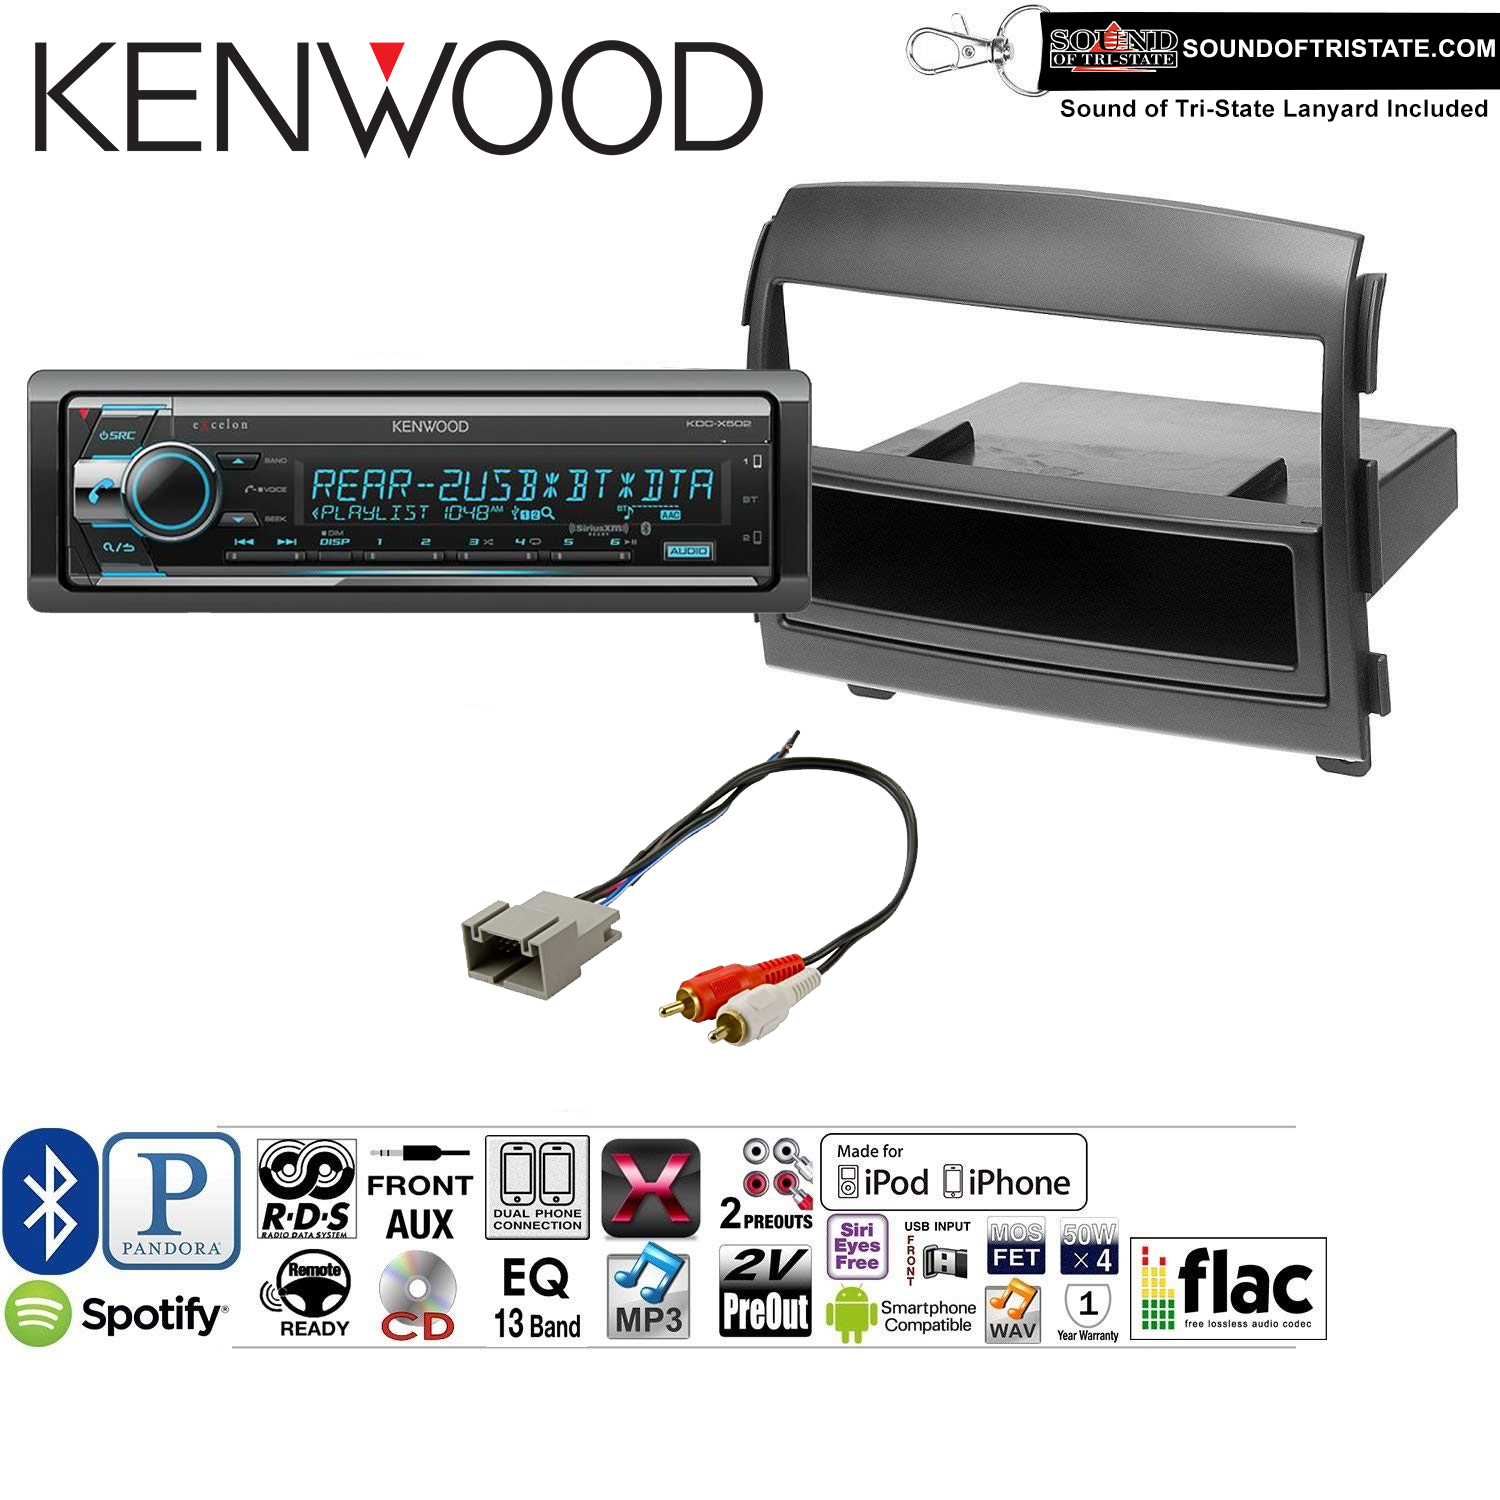 Kenwood KDCX502 Double Din Radio Install Kit with Bluetooth, CD Player, USB/AUX Fits 2006-2008 Hyundai Sonata(NON AMPLIFIED ONLY) and a SOTS lanyard included